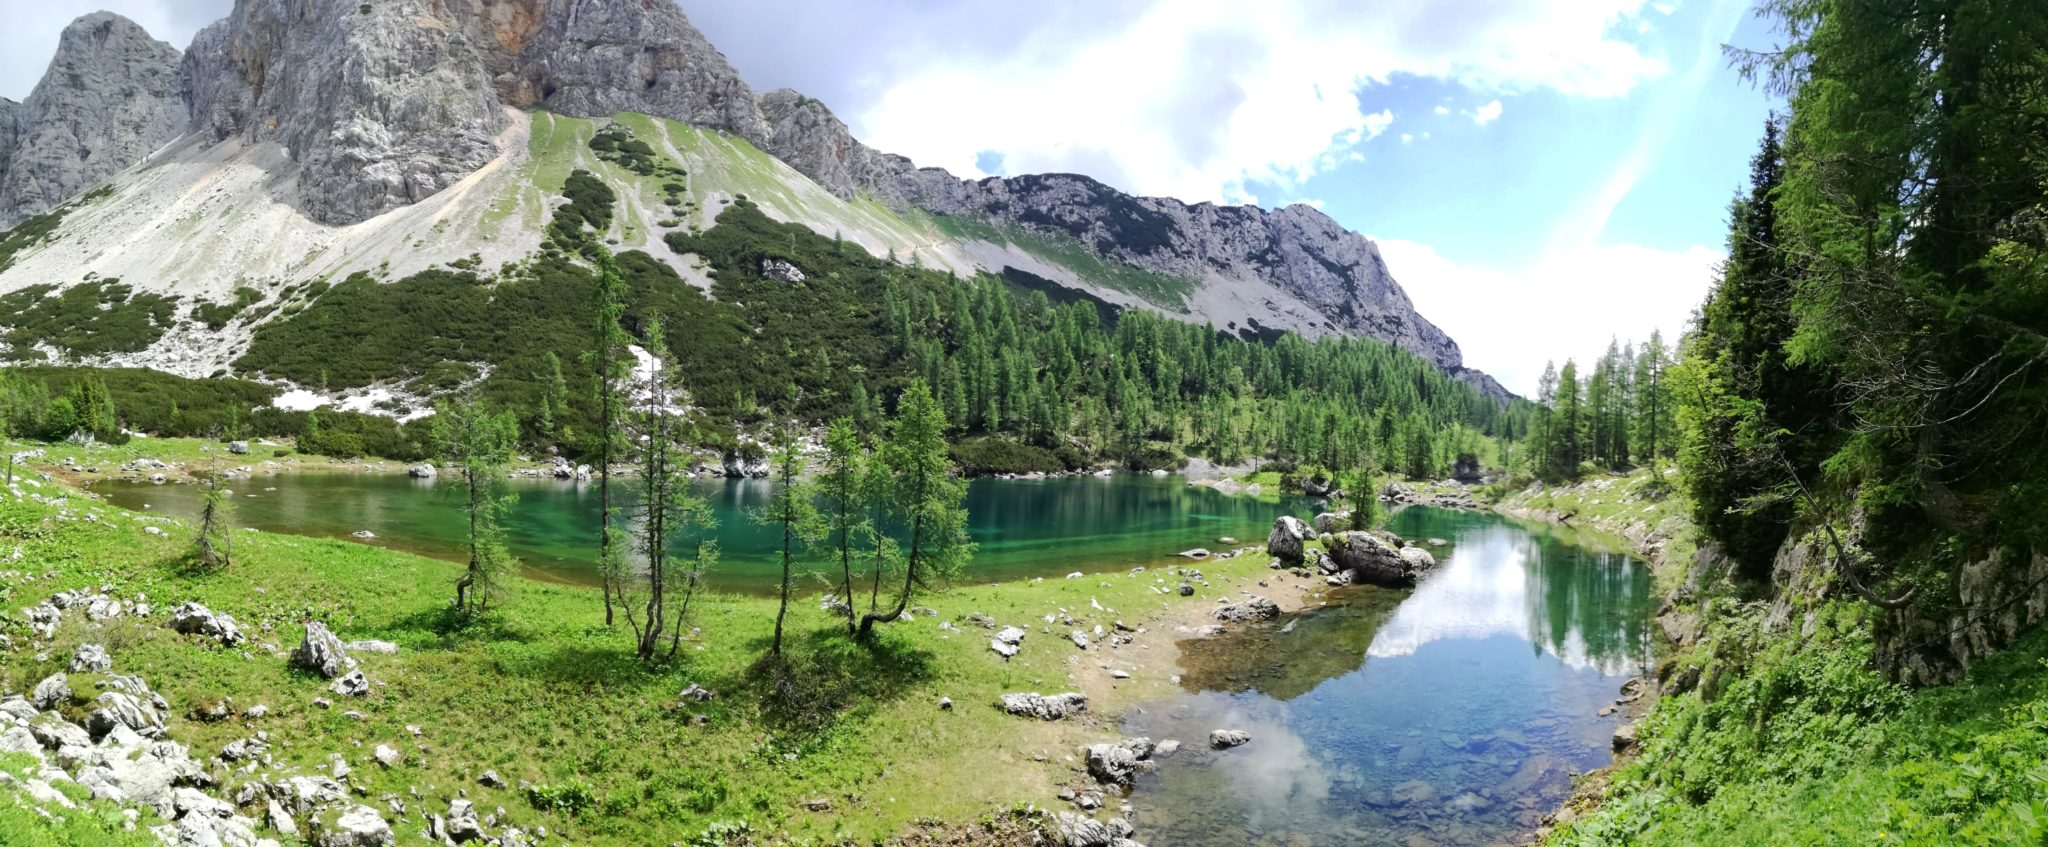 The Double Lake of the Triglav Lakes lies directly beneath Mt. Mala Tičarica